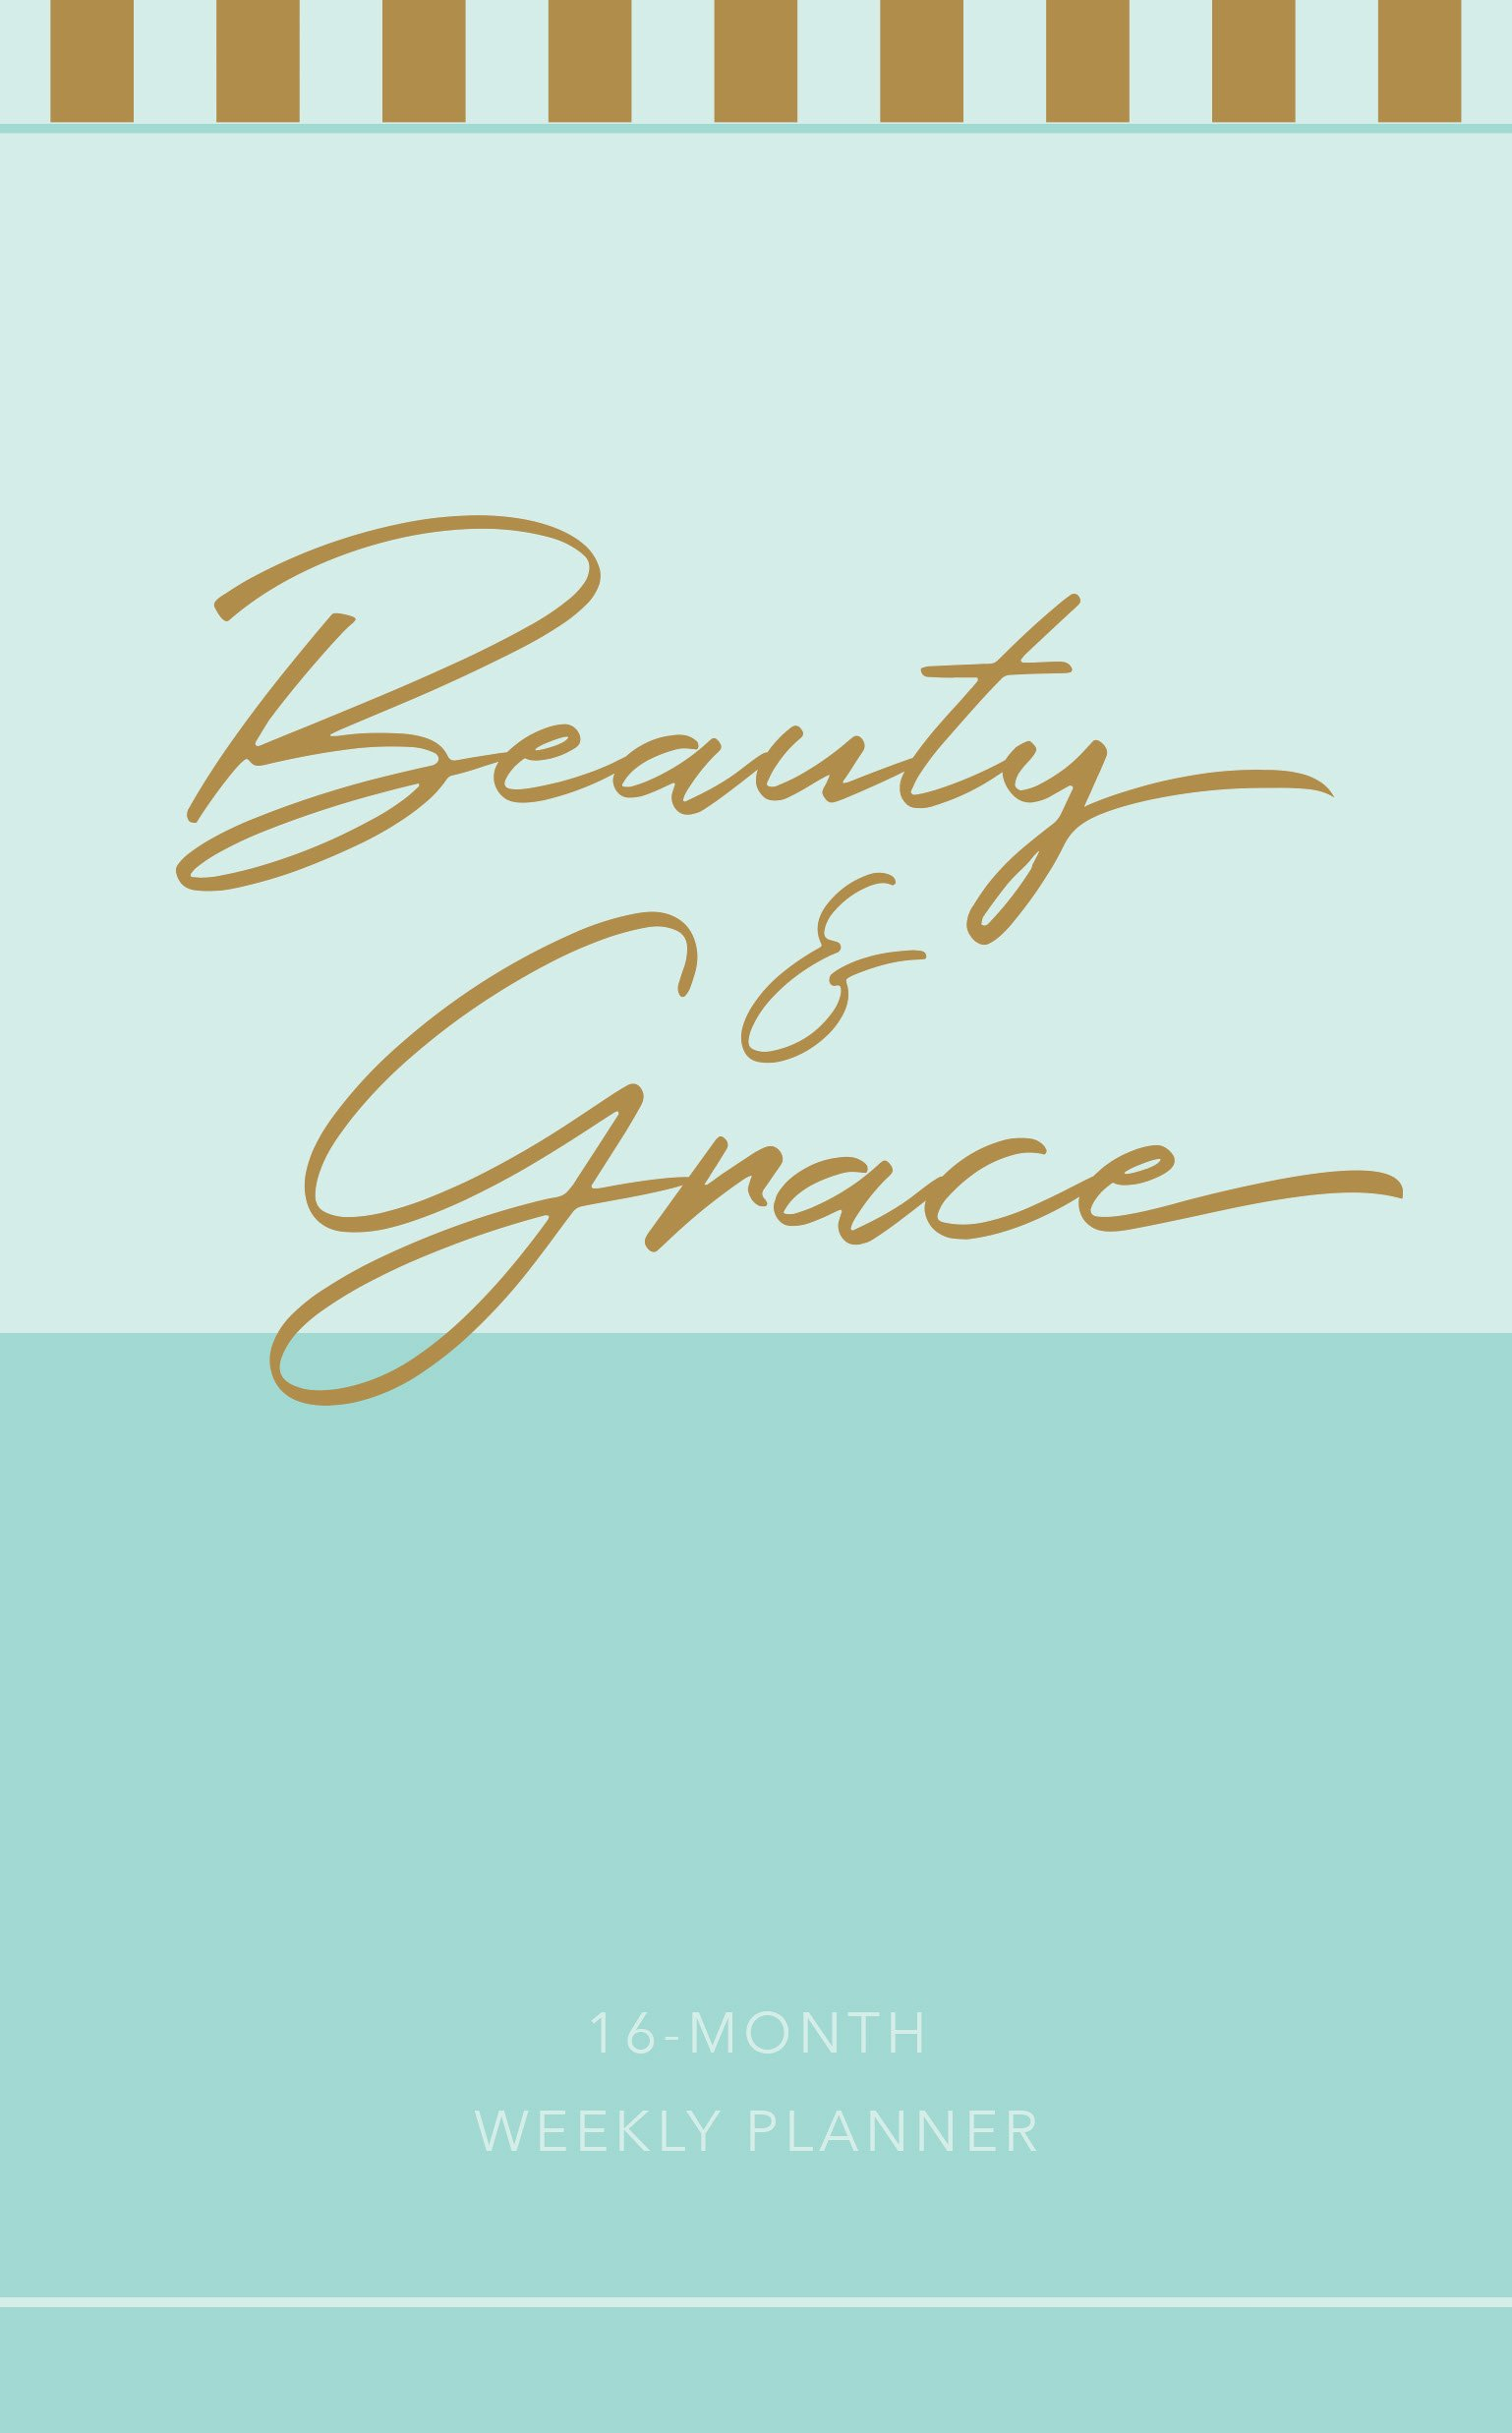 Beauty & Grace 2019 Planner: 16-month Weekly Planner